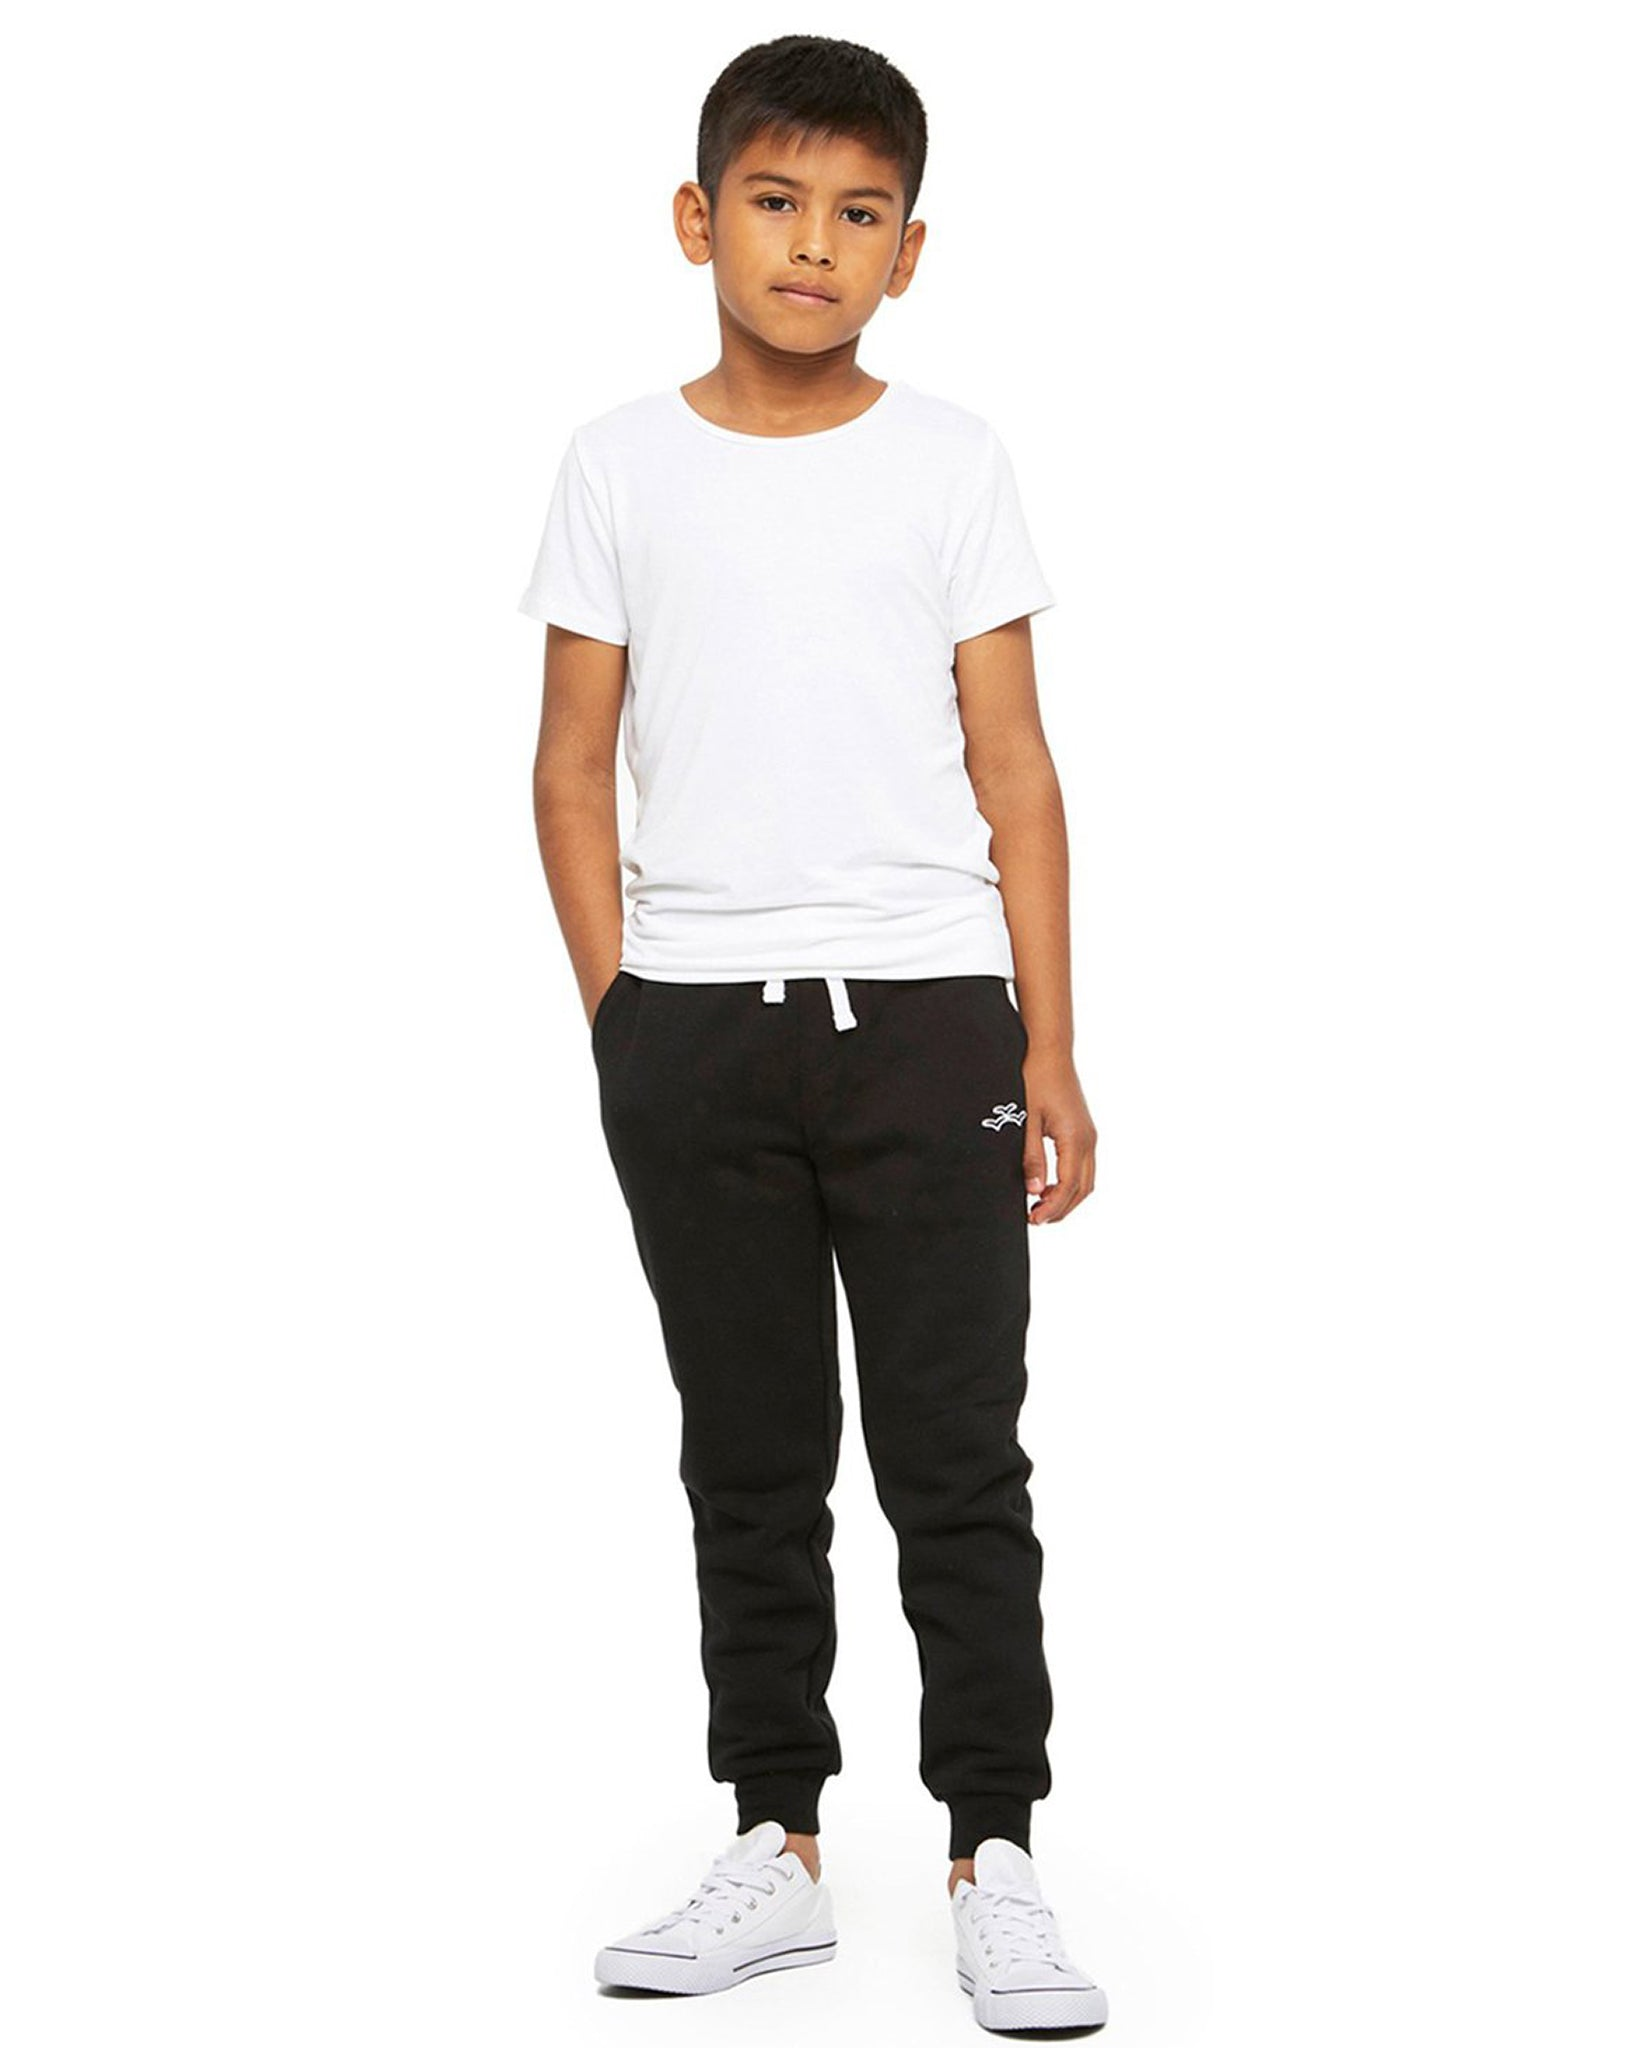 Lazypants Charlie Slim Jogger Sweatpants - Girls/Boys - Black - Activewear - Bottoms - Dancewear Centre Canada